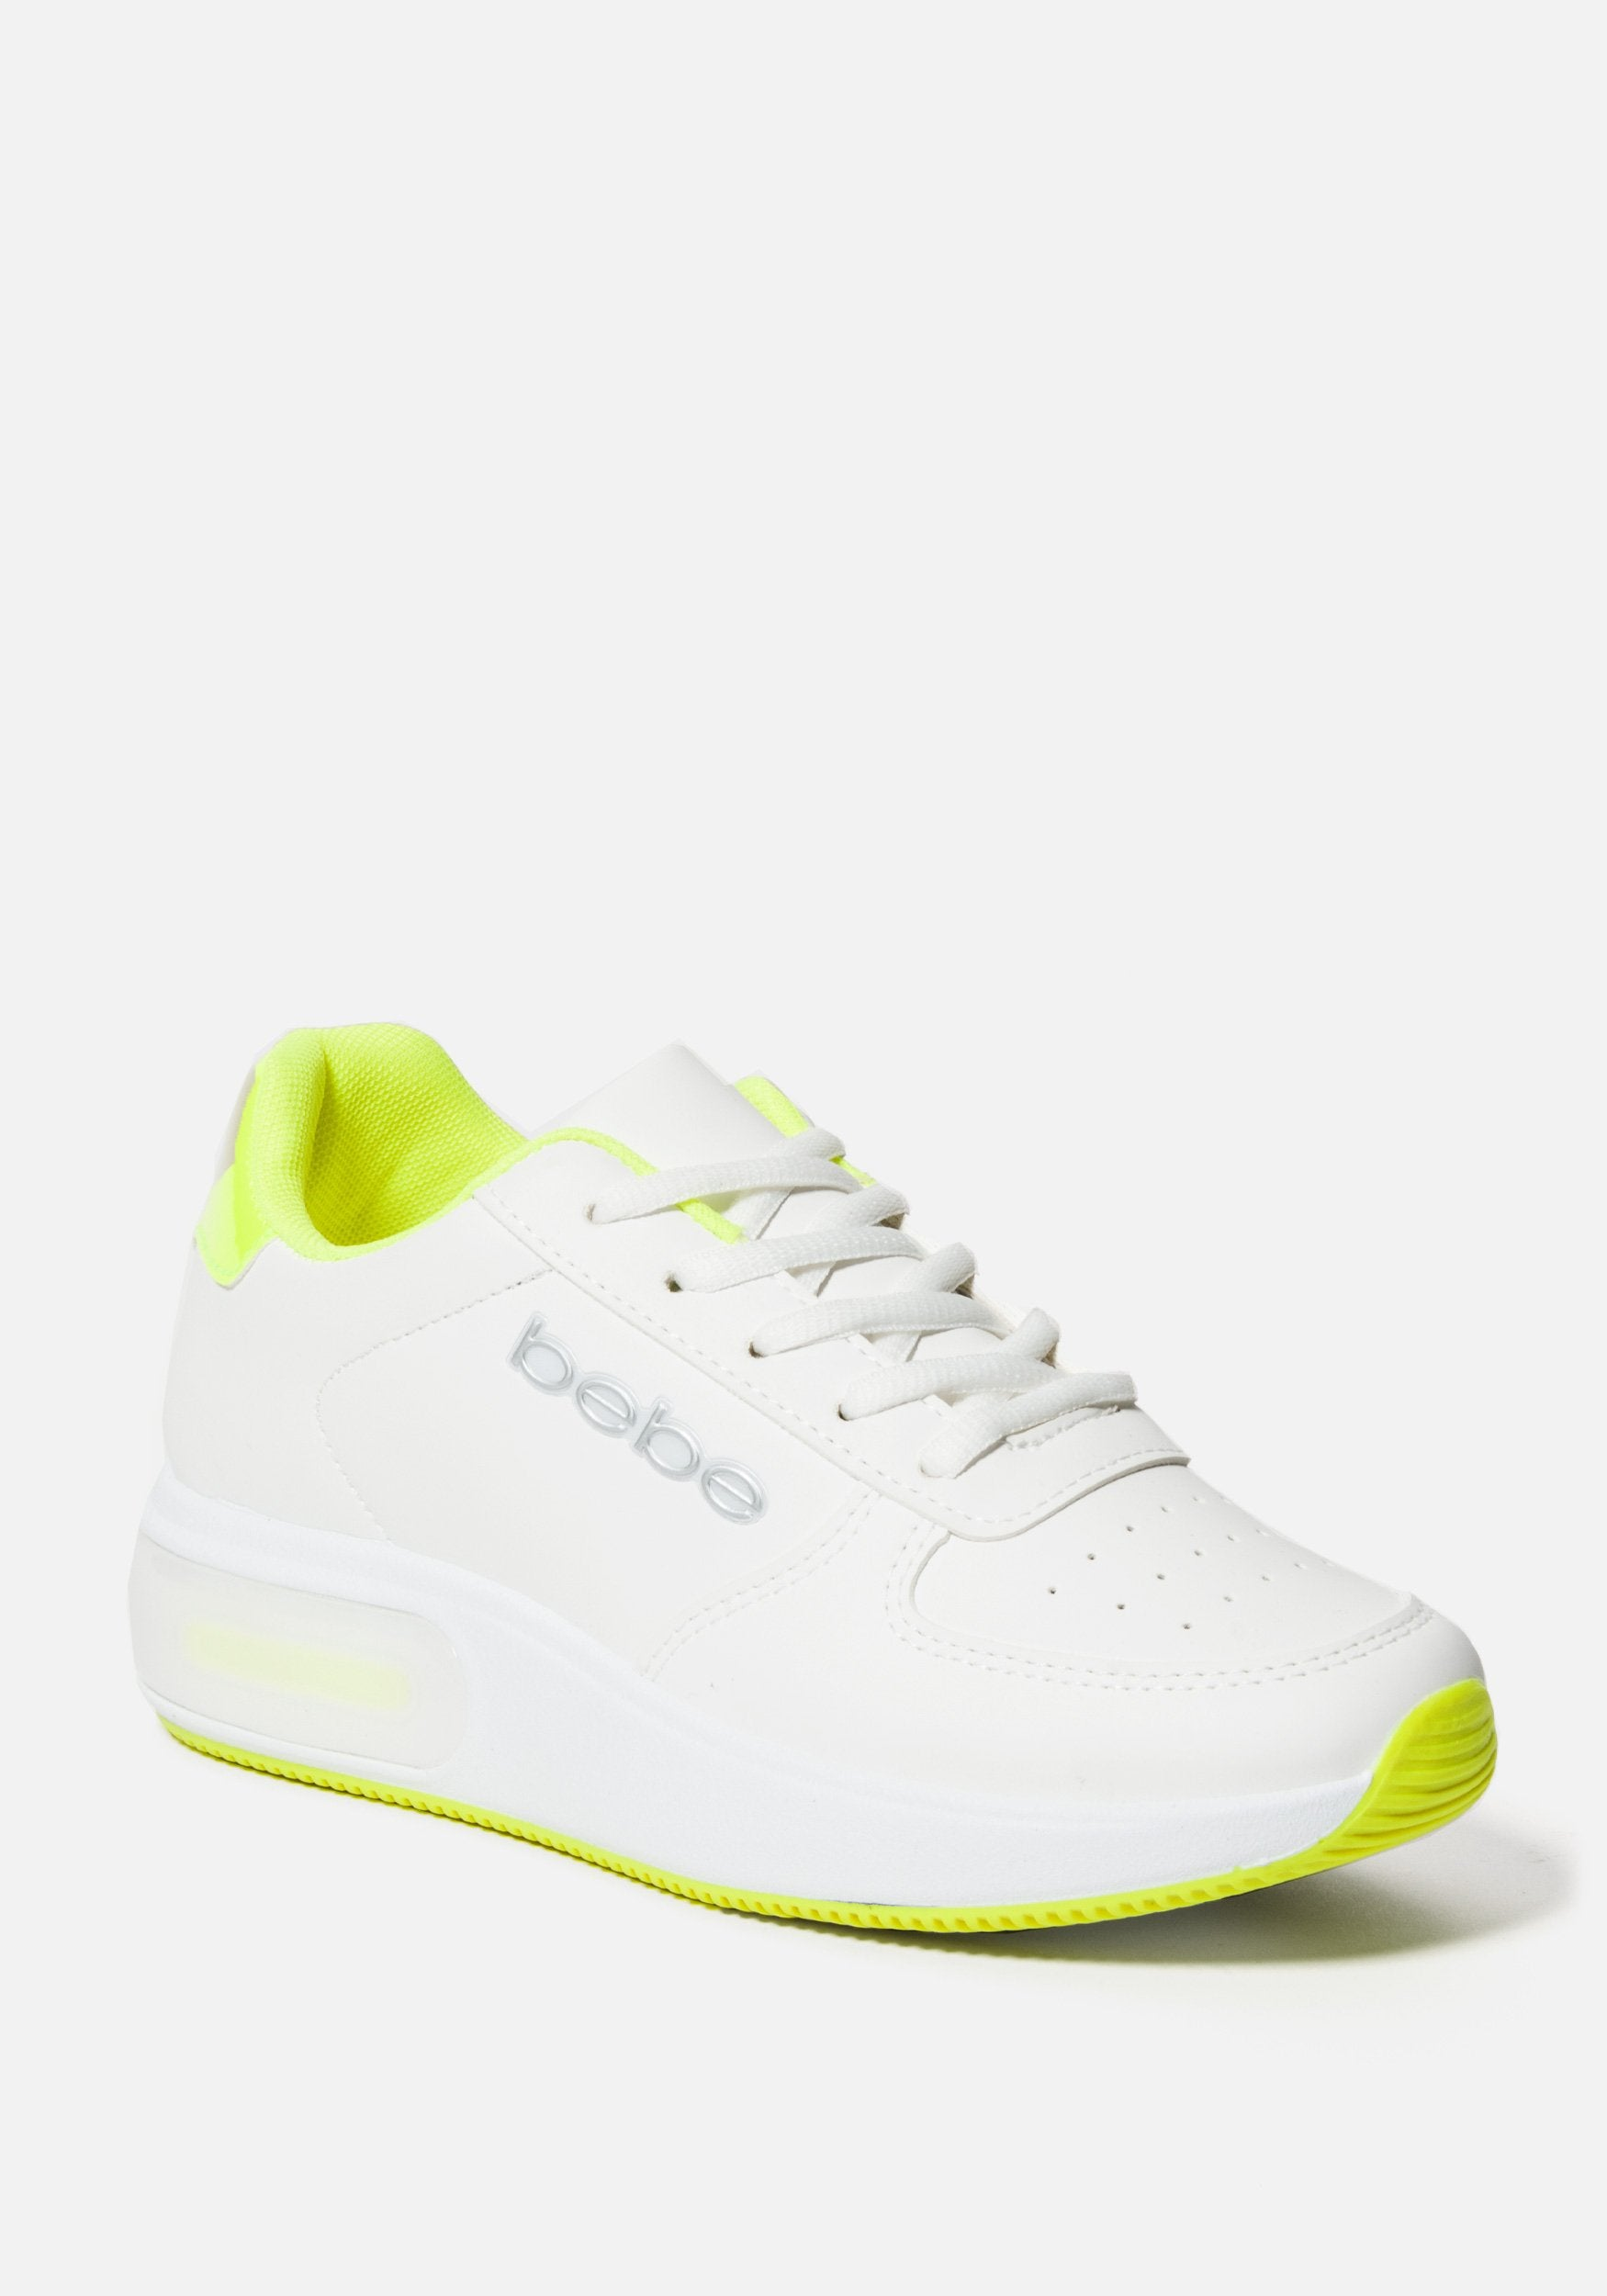 Bebe Women's Lennin Chunky Sneakers, Size 6 in WHITE YELLOW Synthetic